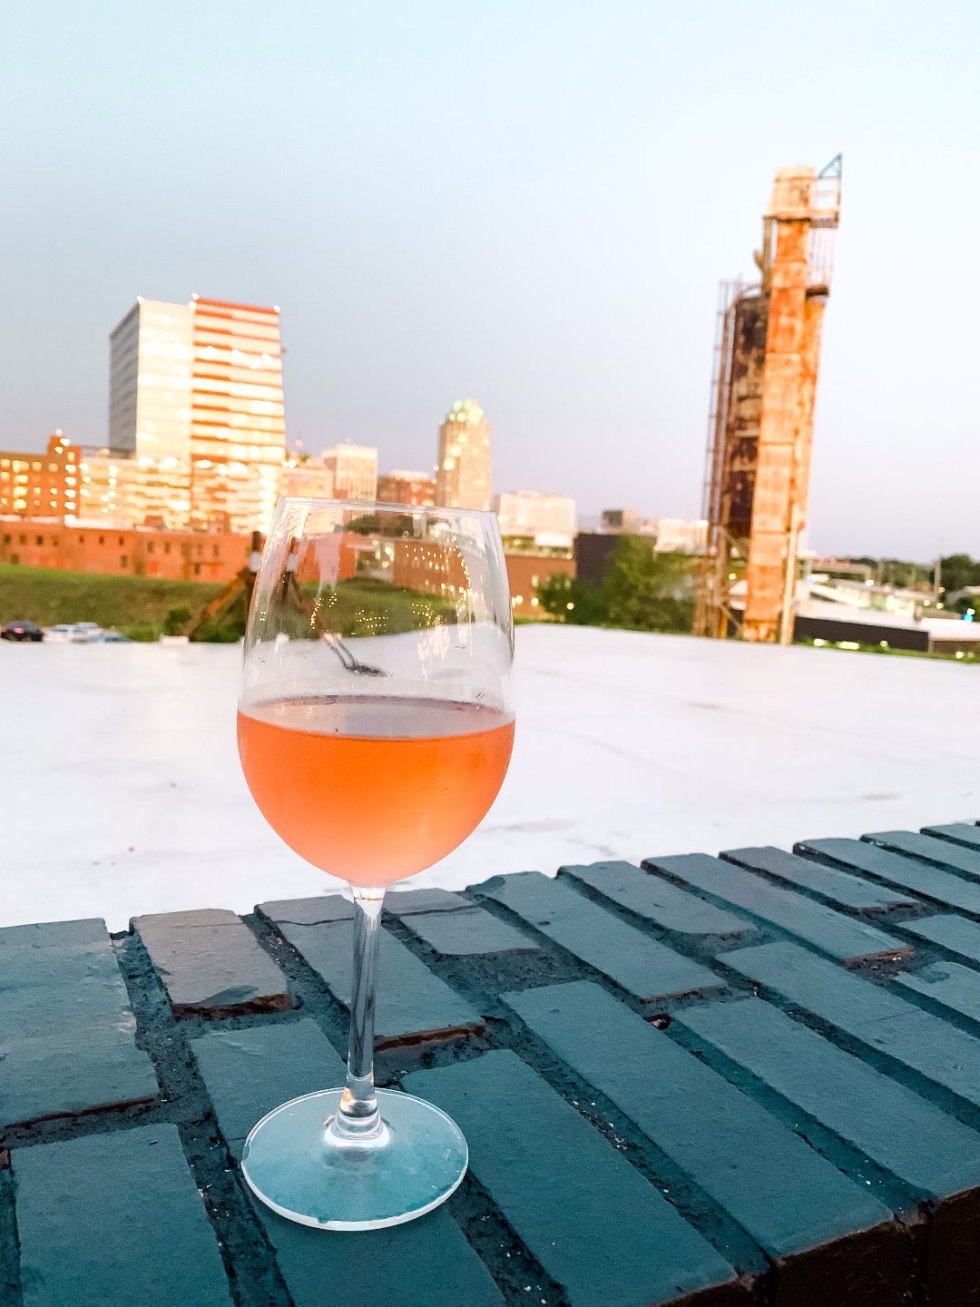 The 20 North Carolina Restaurants I Can't Wait to Visit after Quarantine - I'm Fixin' To - @mbg0112 | Best North Carolina Restaurants by popular N.C. blog, I'm Fixin' To: image of a alcoholic beverage at Wye Hill restaurant.